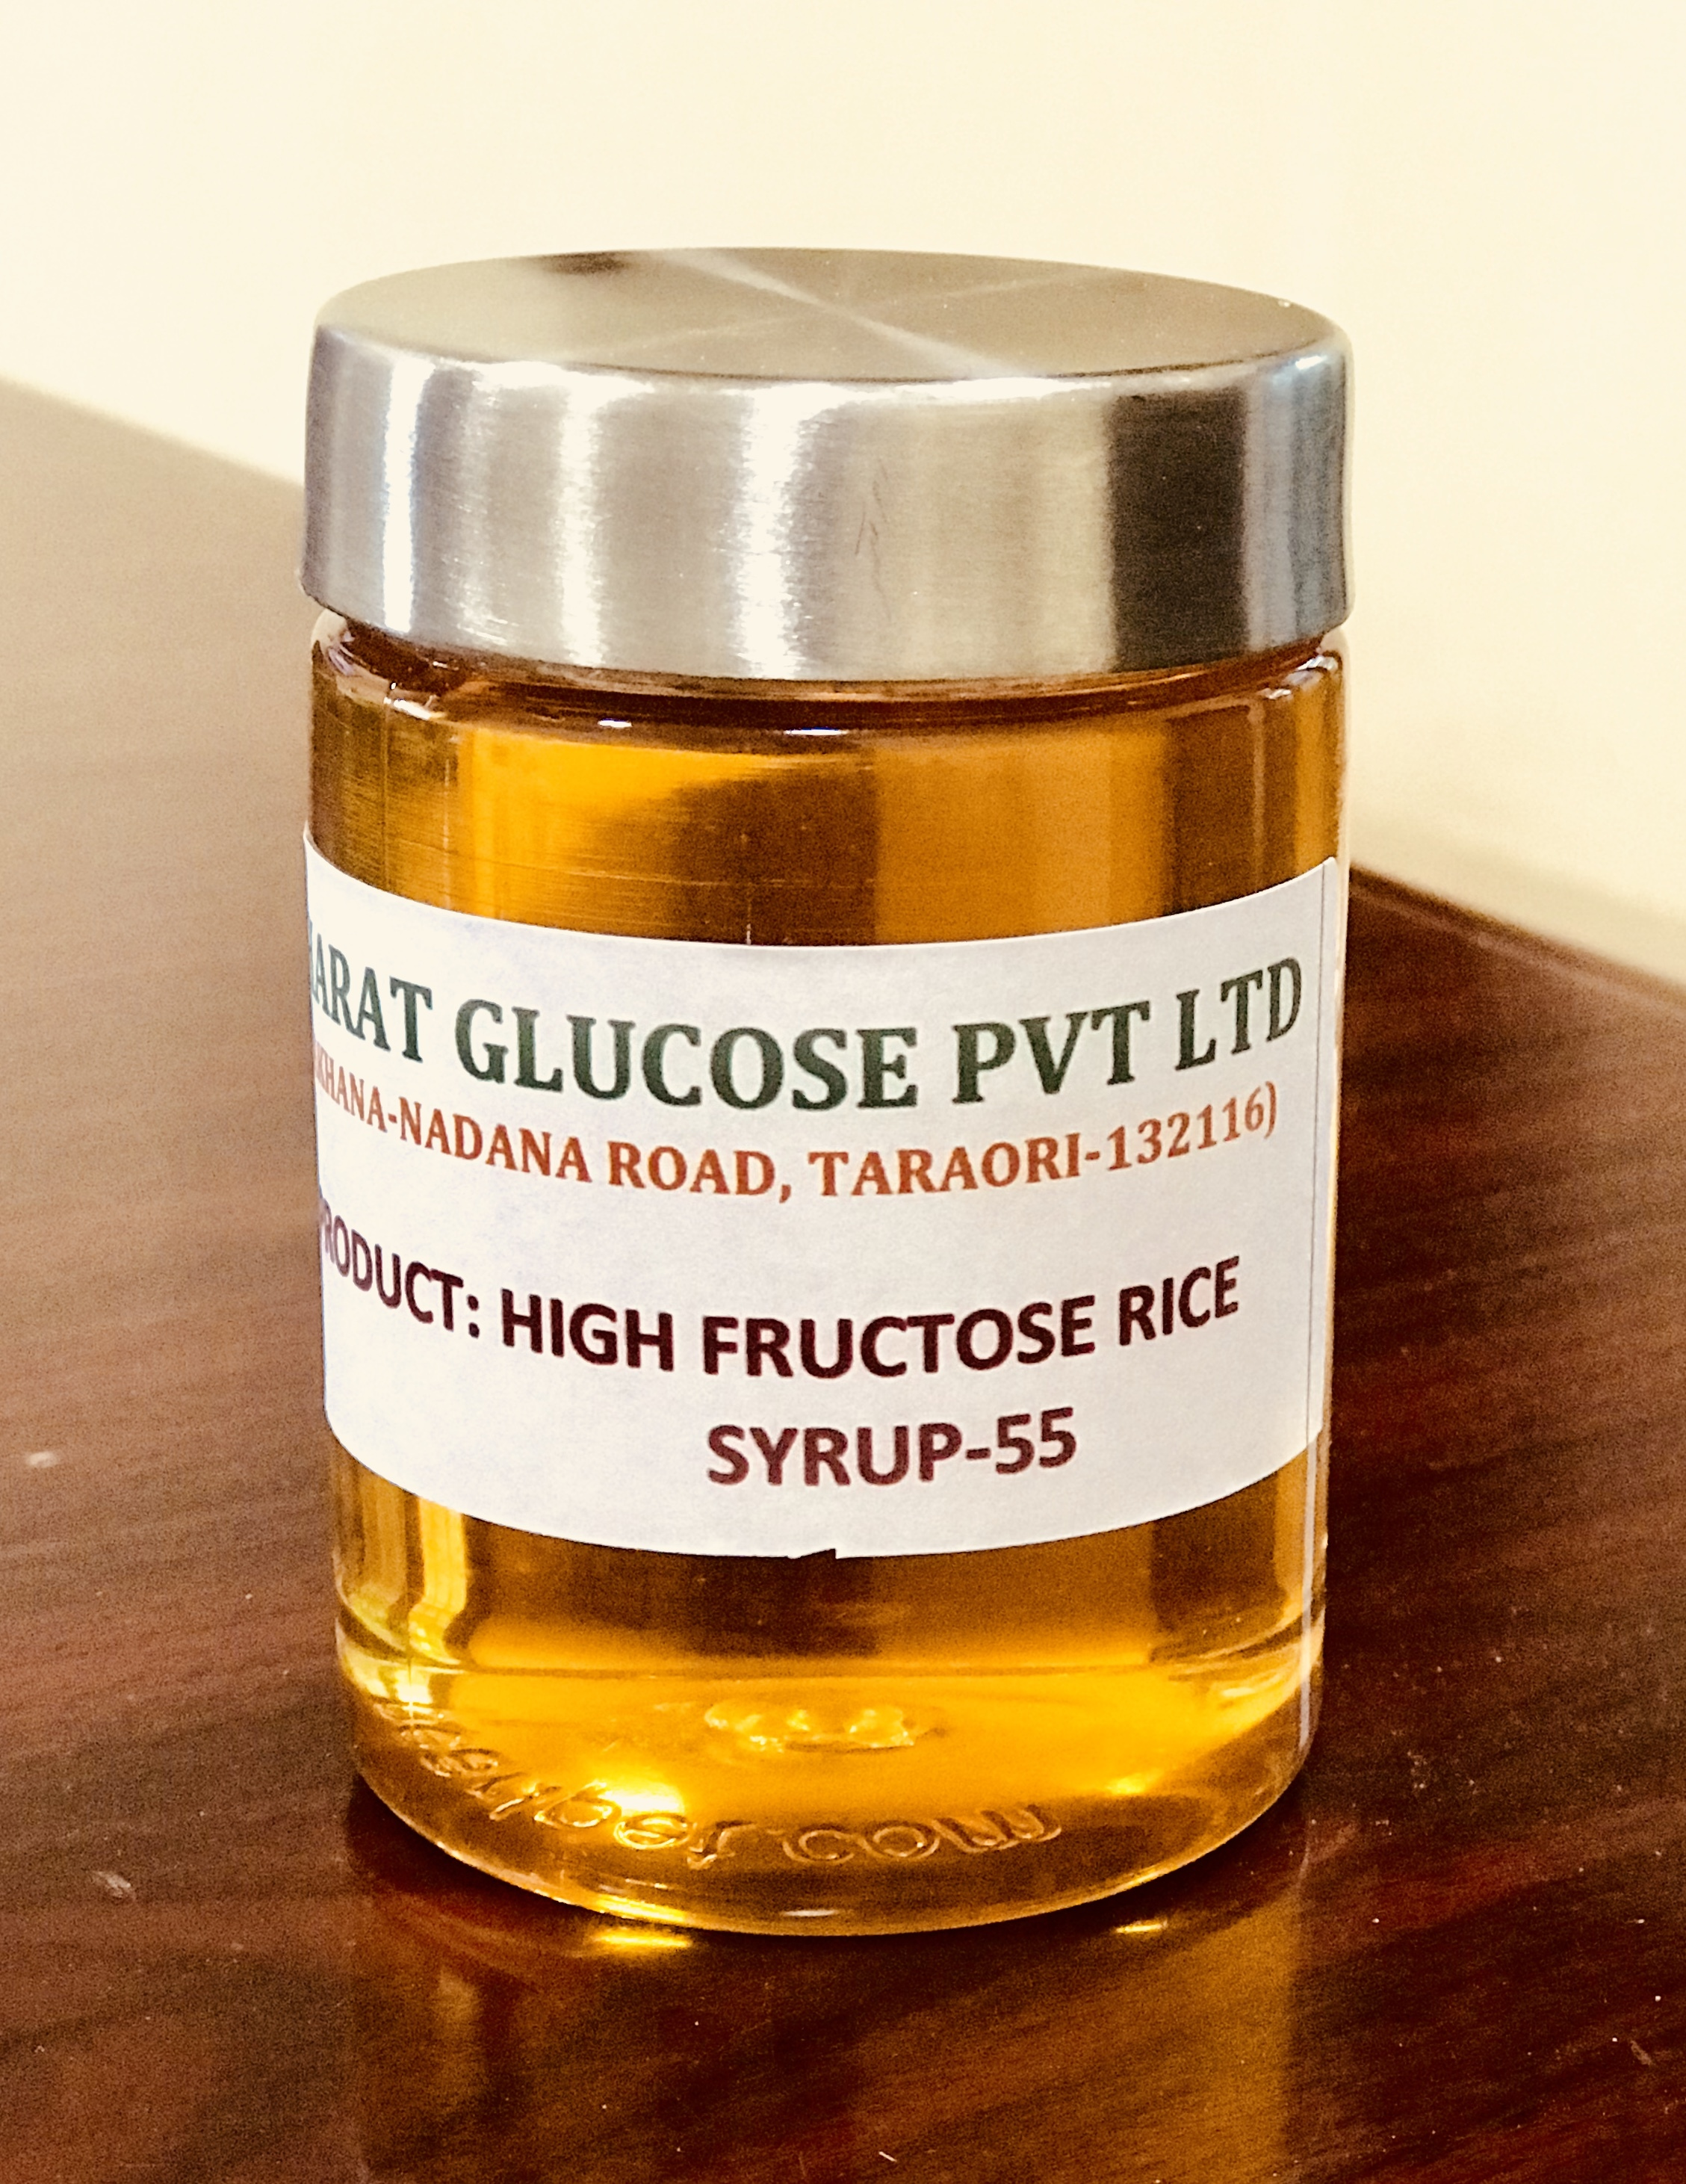 High Fructose Rice Syrup